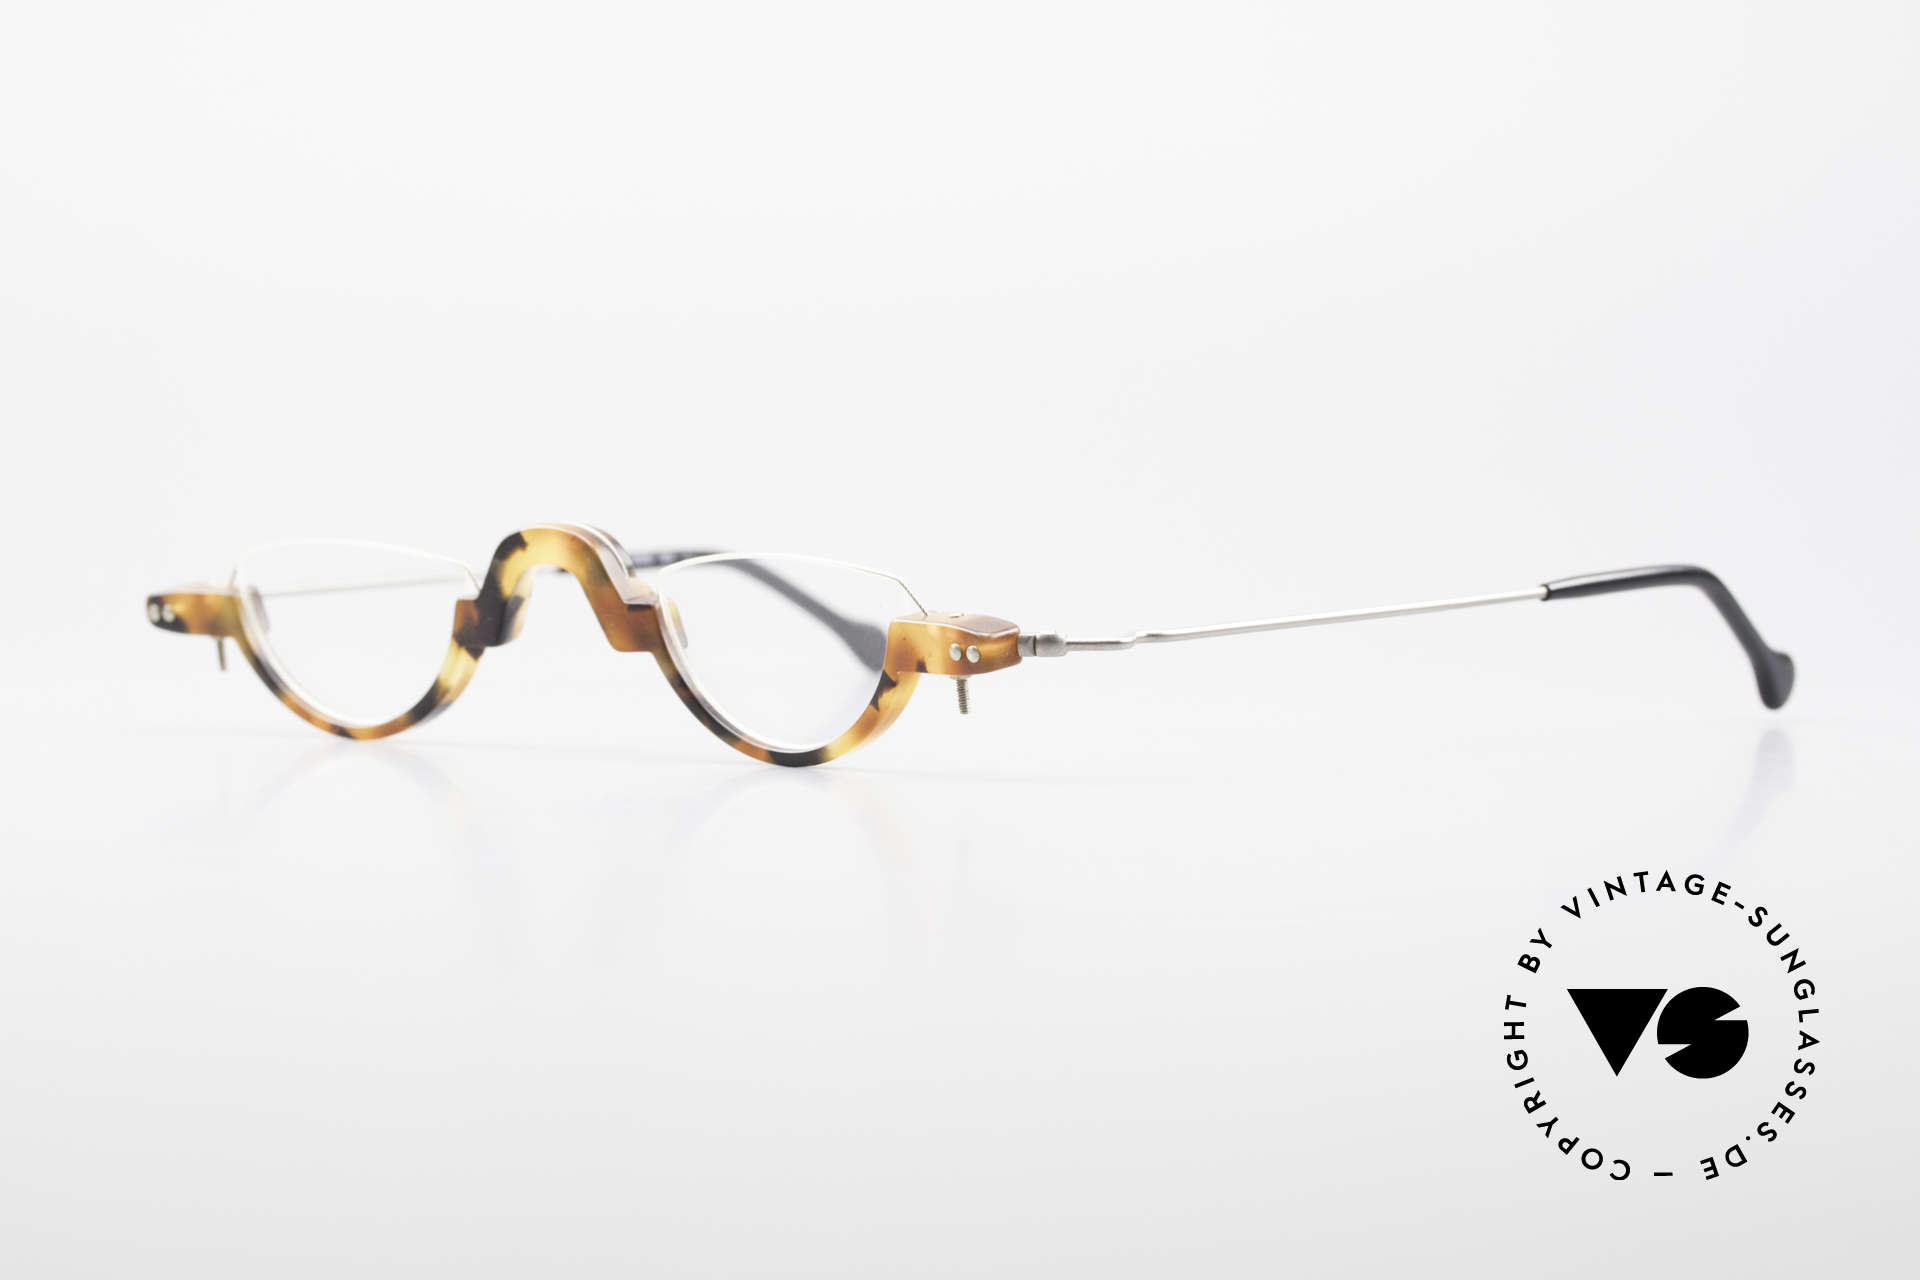 MDG Bauhaus 5010 Minimalist Reading Glasses 90s, plastic frame front, handcrafted, true collector's item, Made for Men